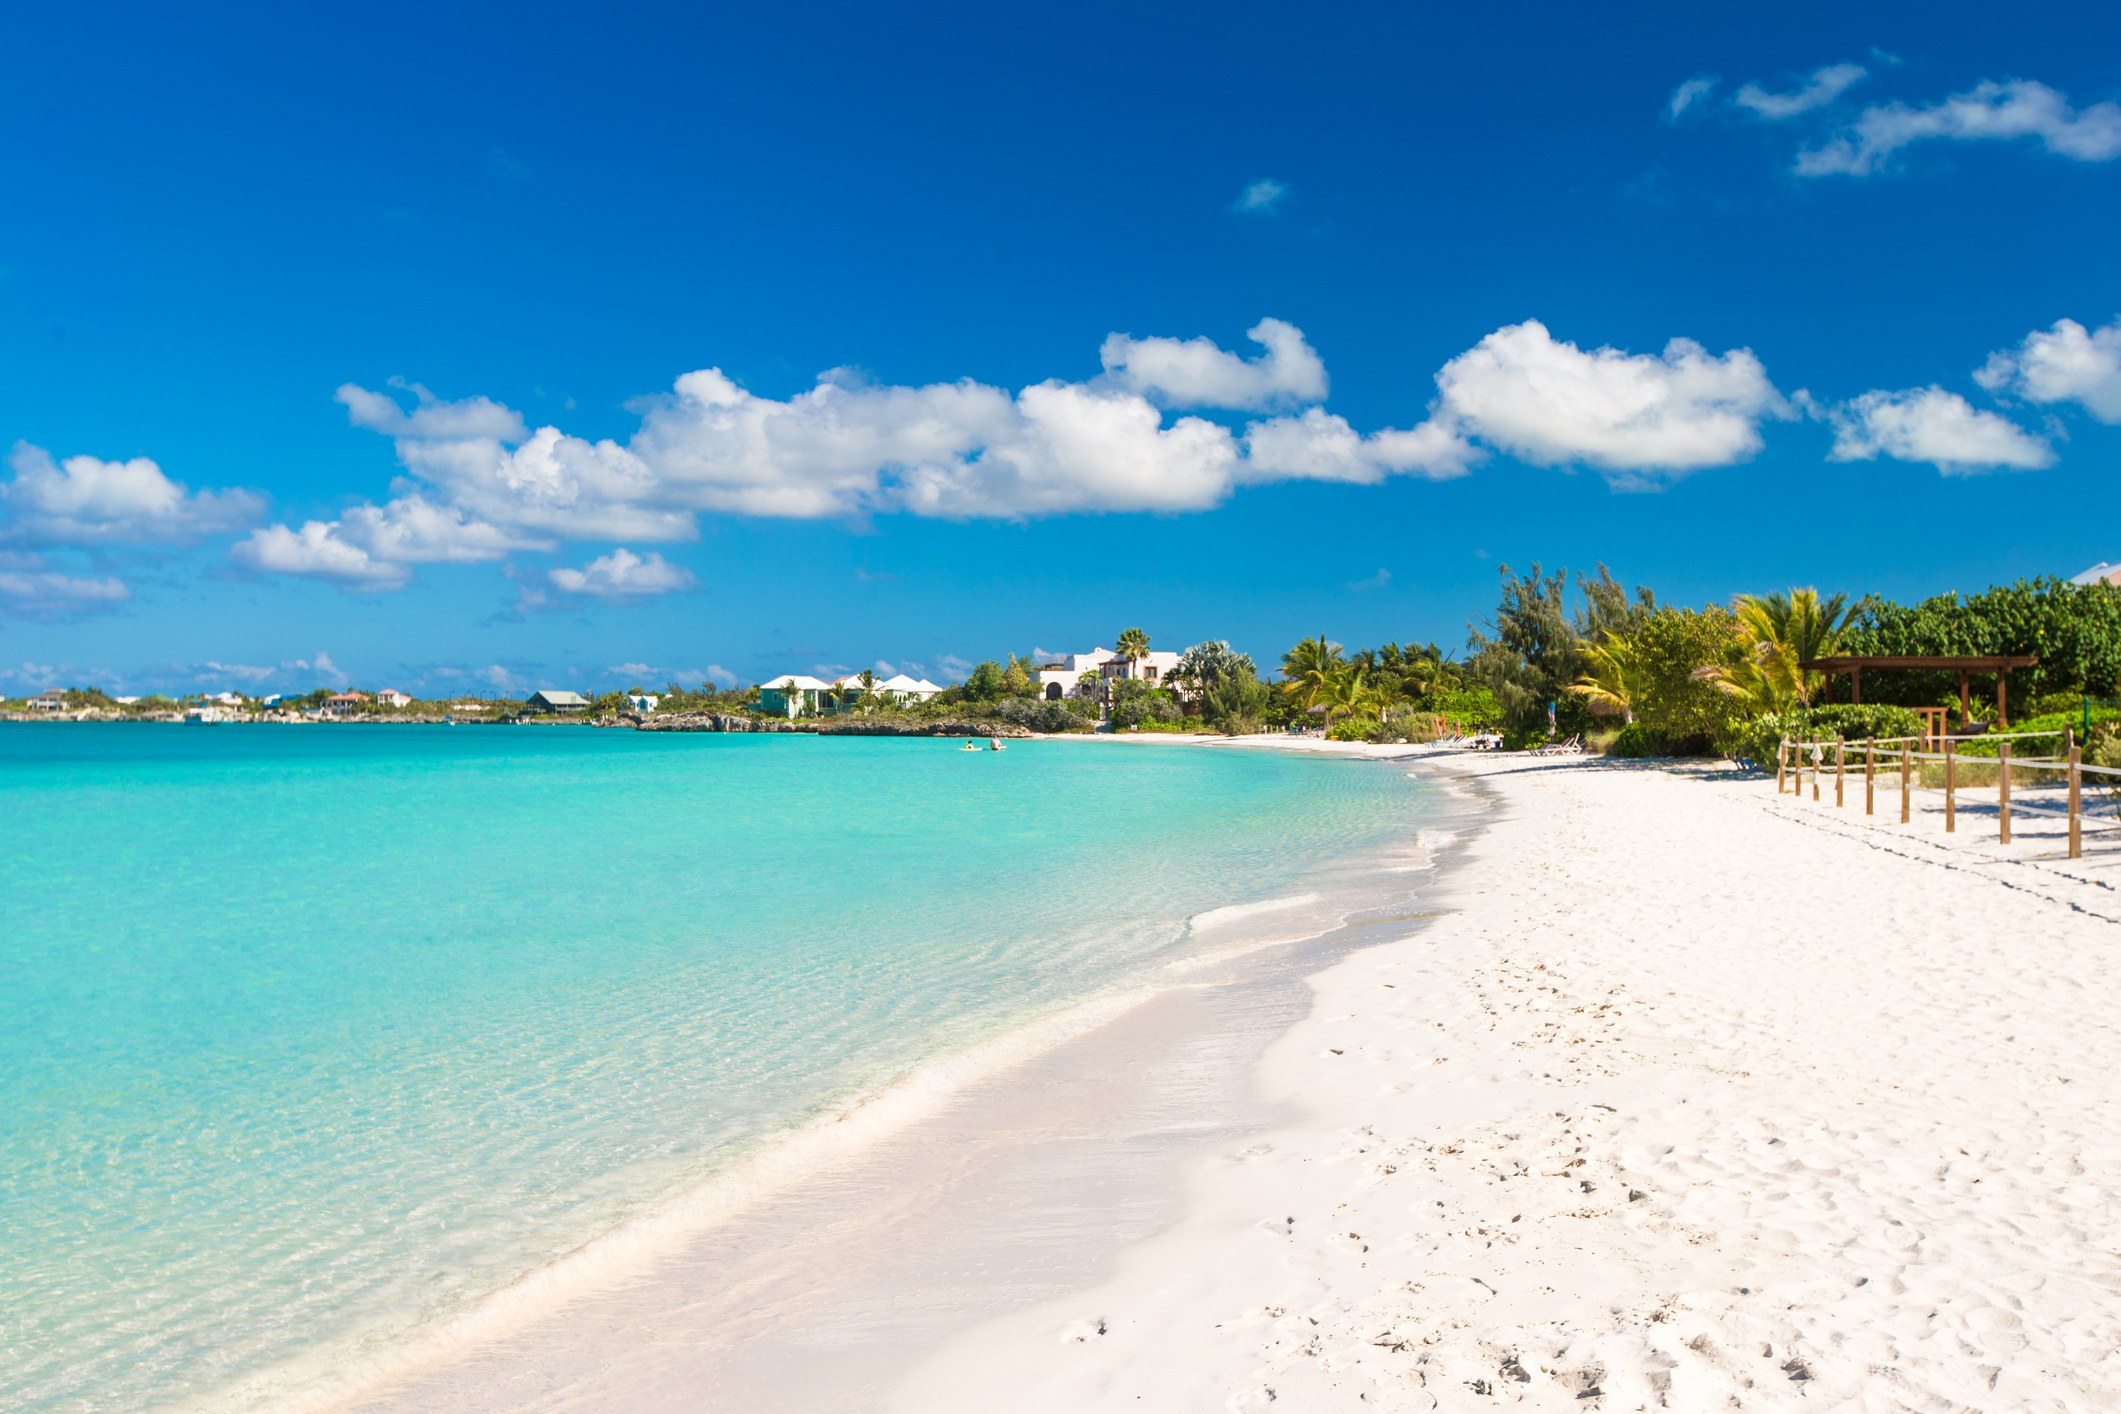 Ideal white beach in the Caribbean island